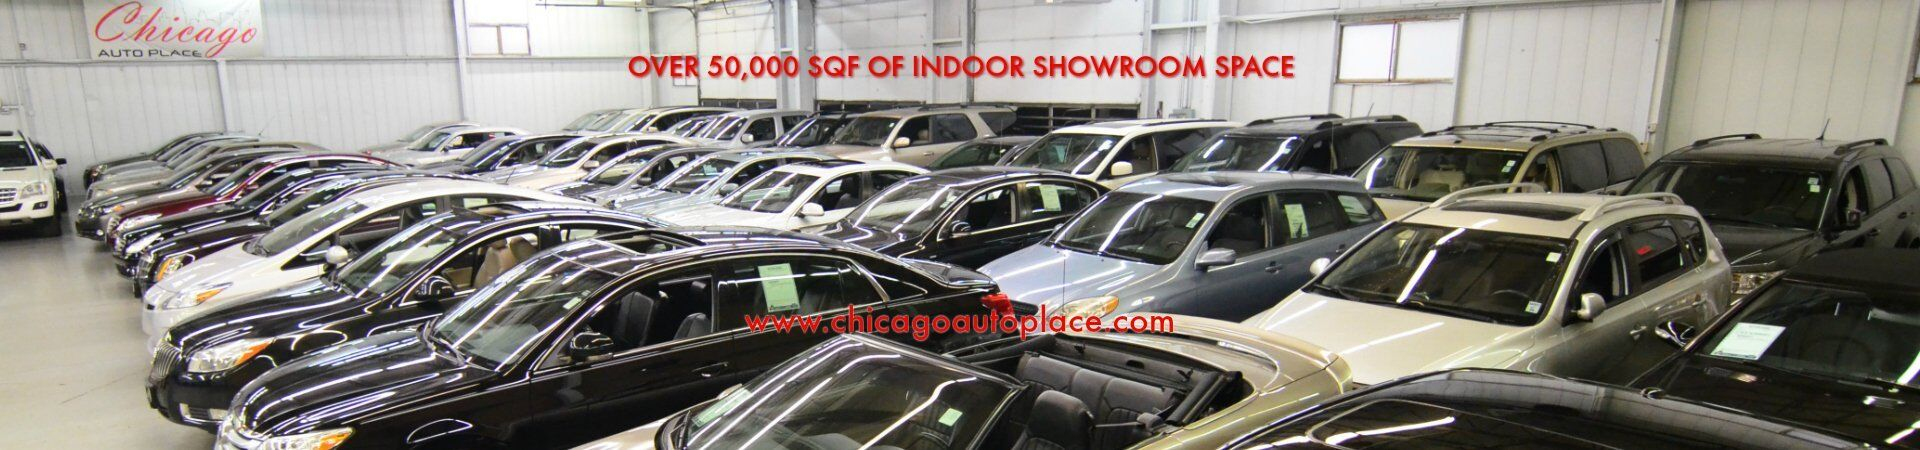 Indoor Showroom